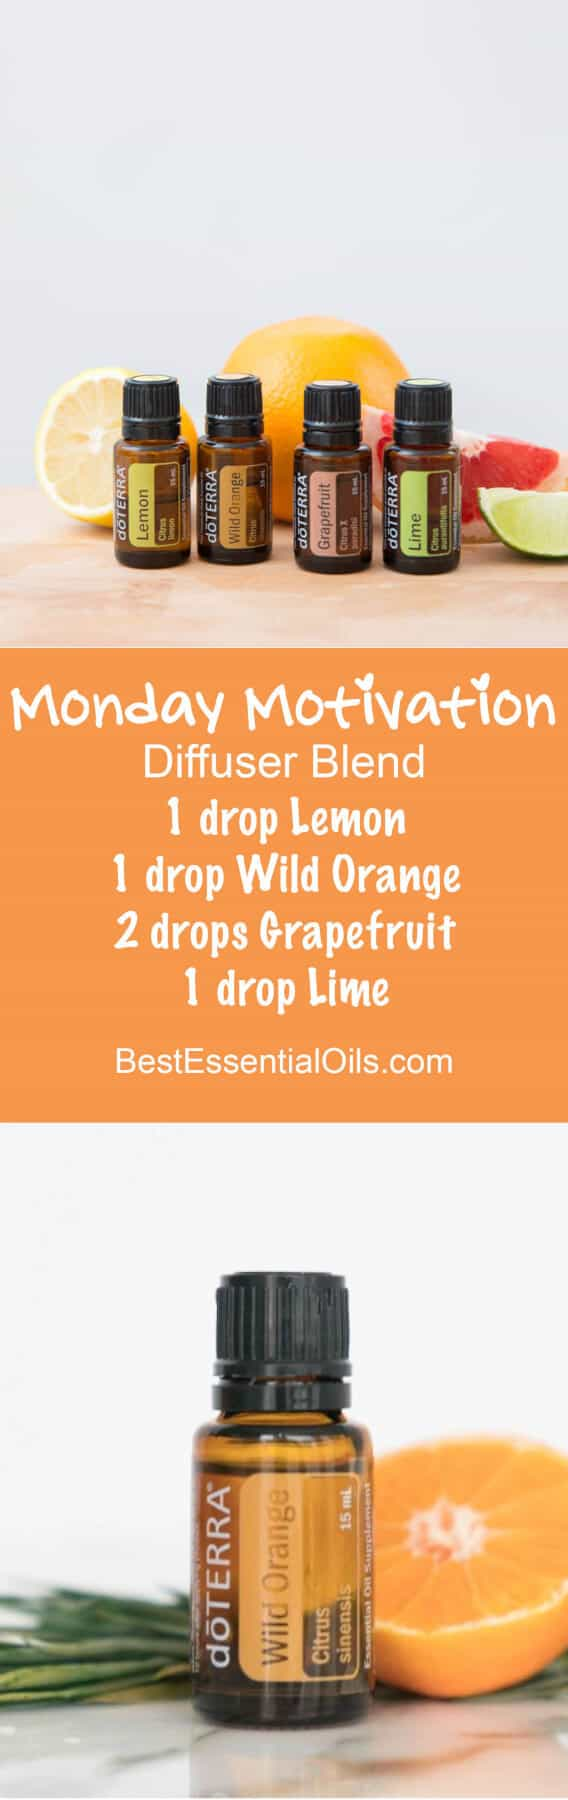 Monday Motivation doTERRA Diffuser Blend